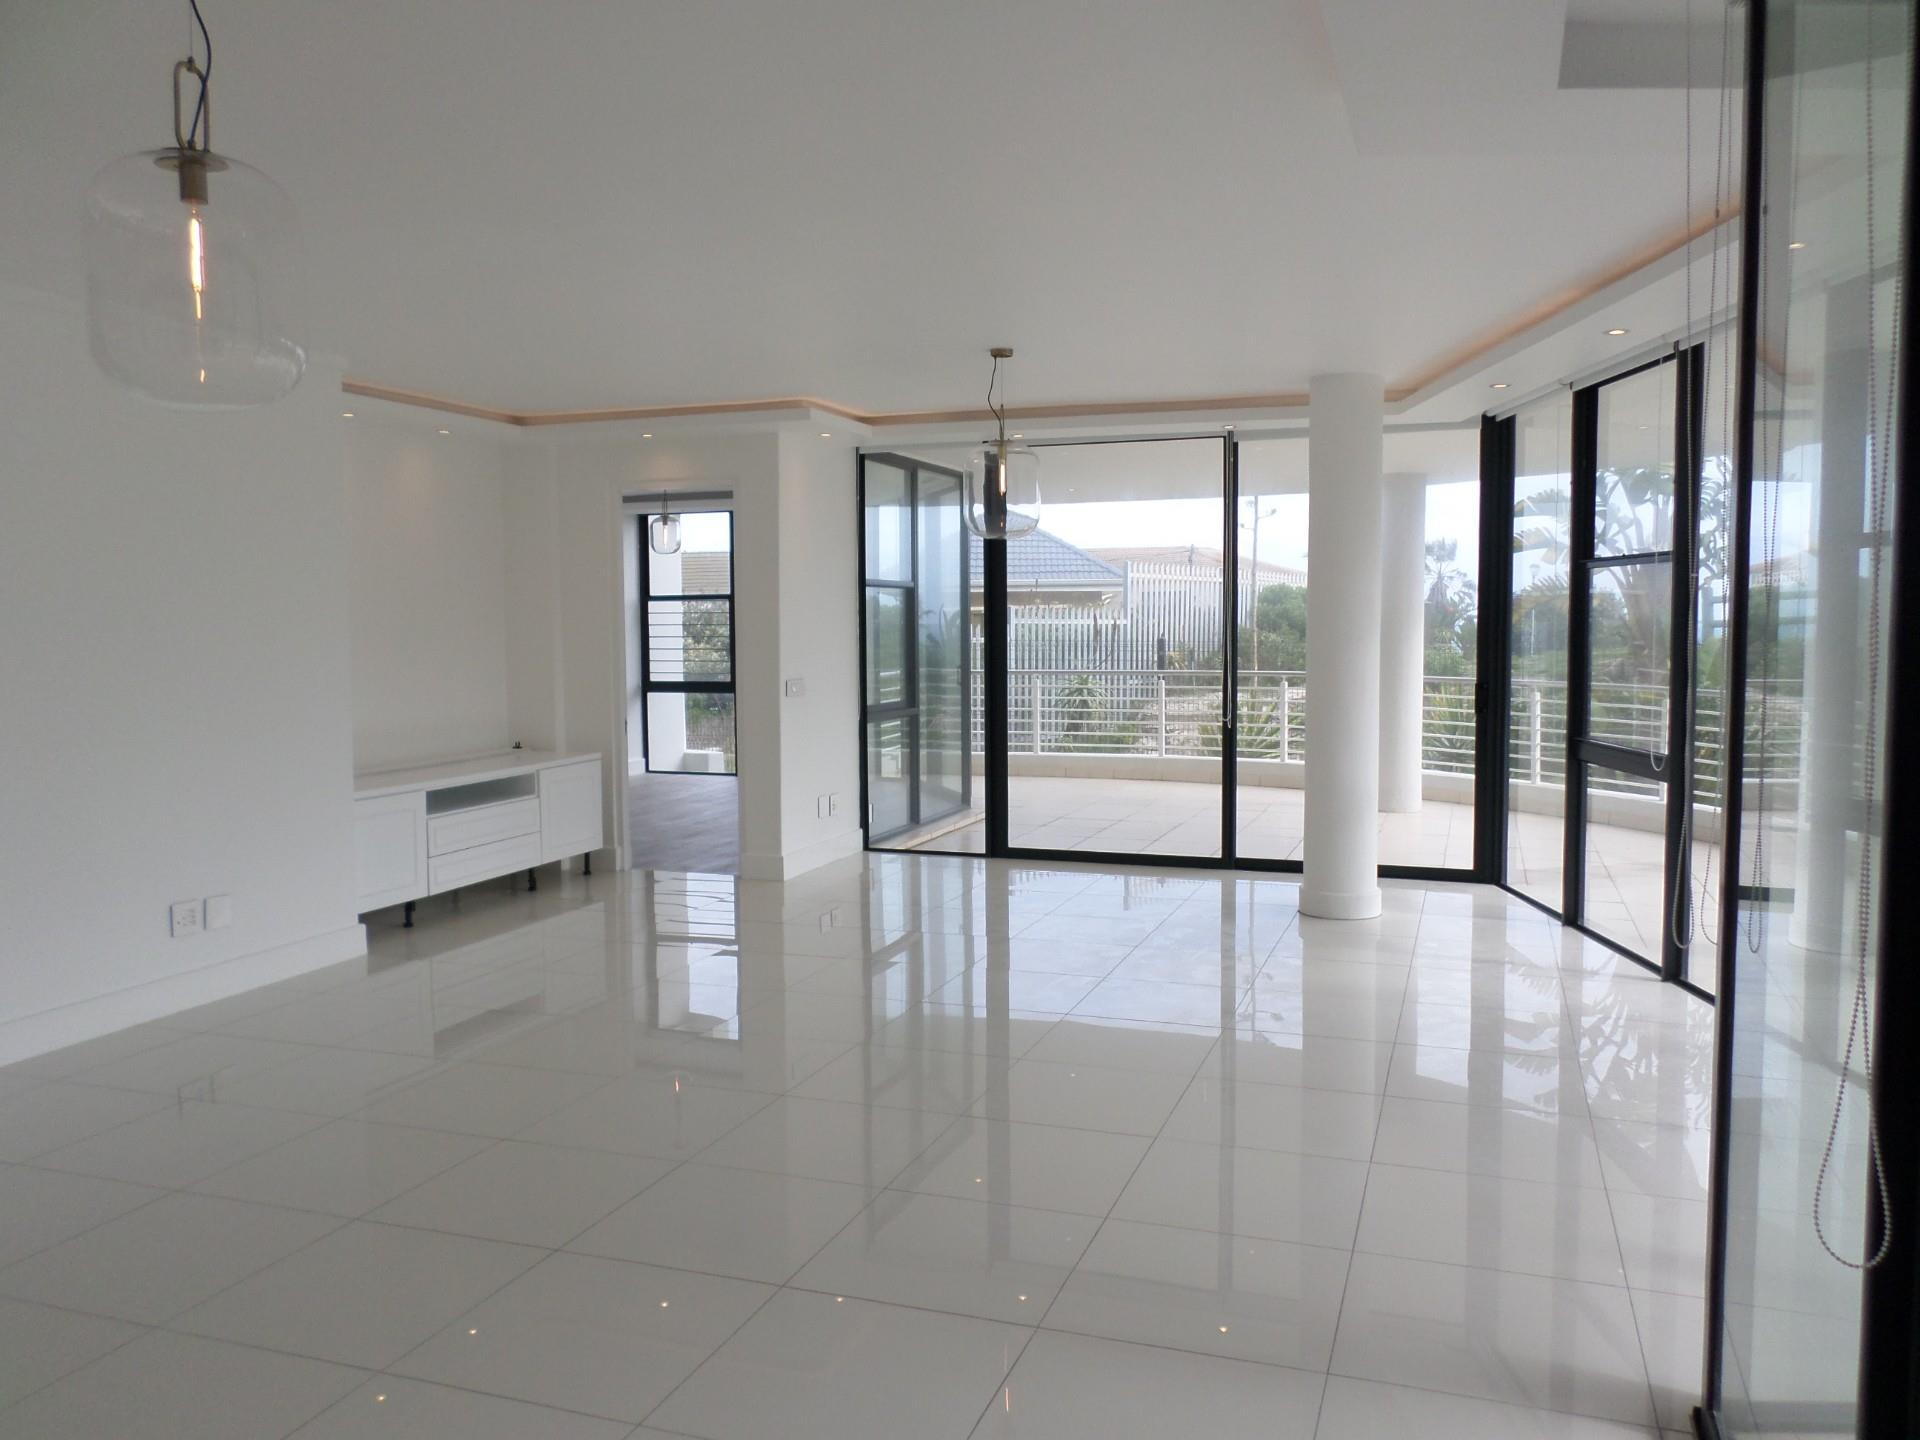 3 Bedroom Apartment / Flat For Sale in Bloubergstrand